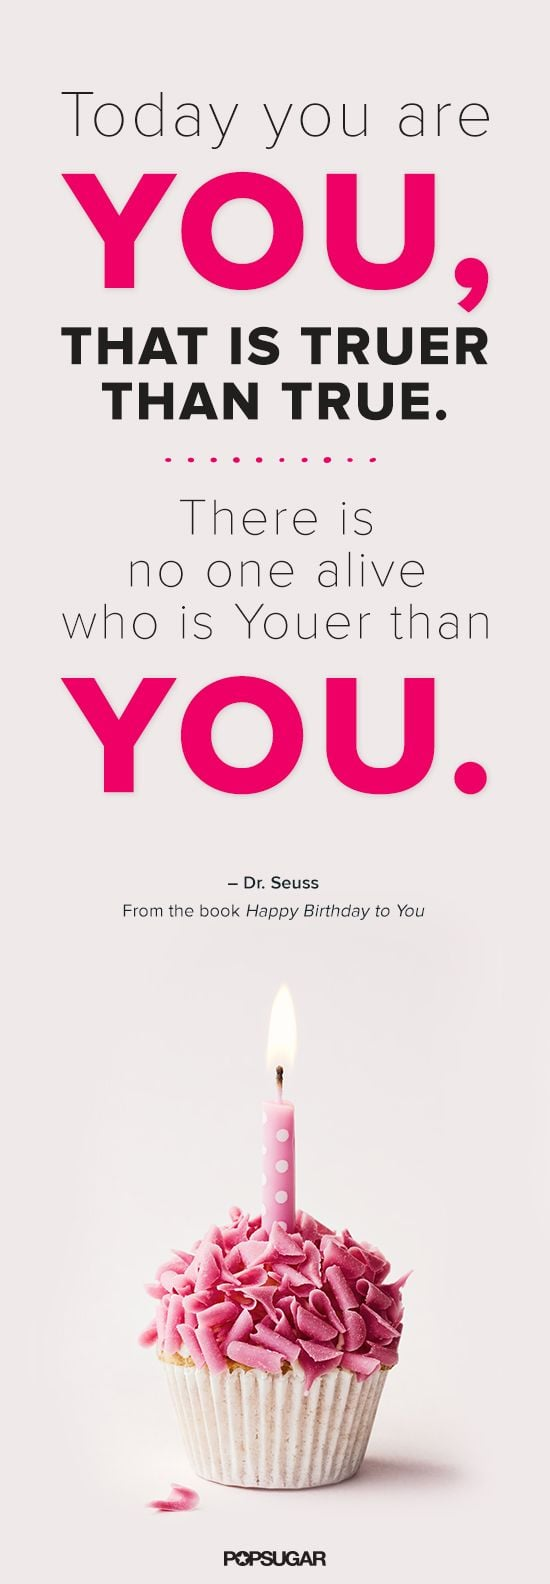 Happy Birthday To You Quotes From Kids Books Popsugar